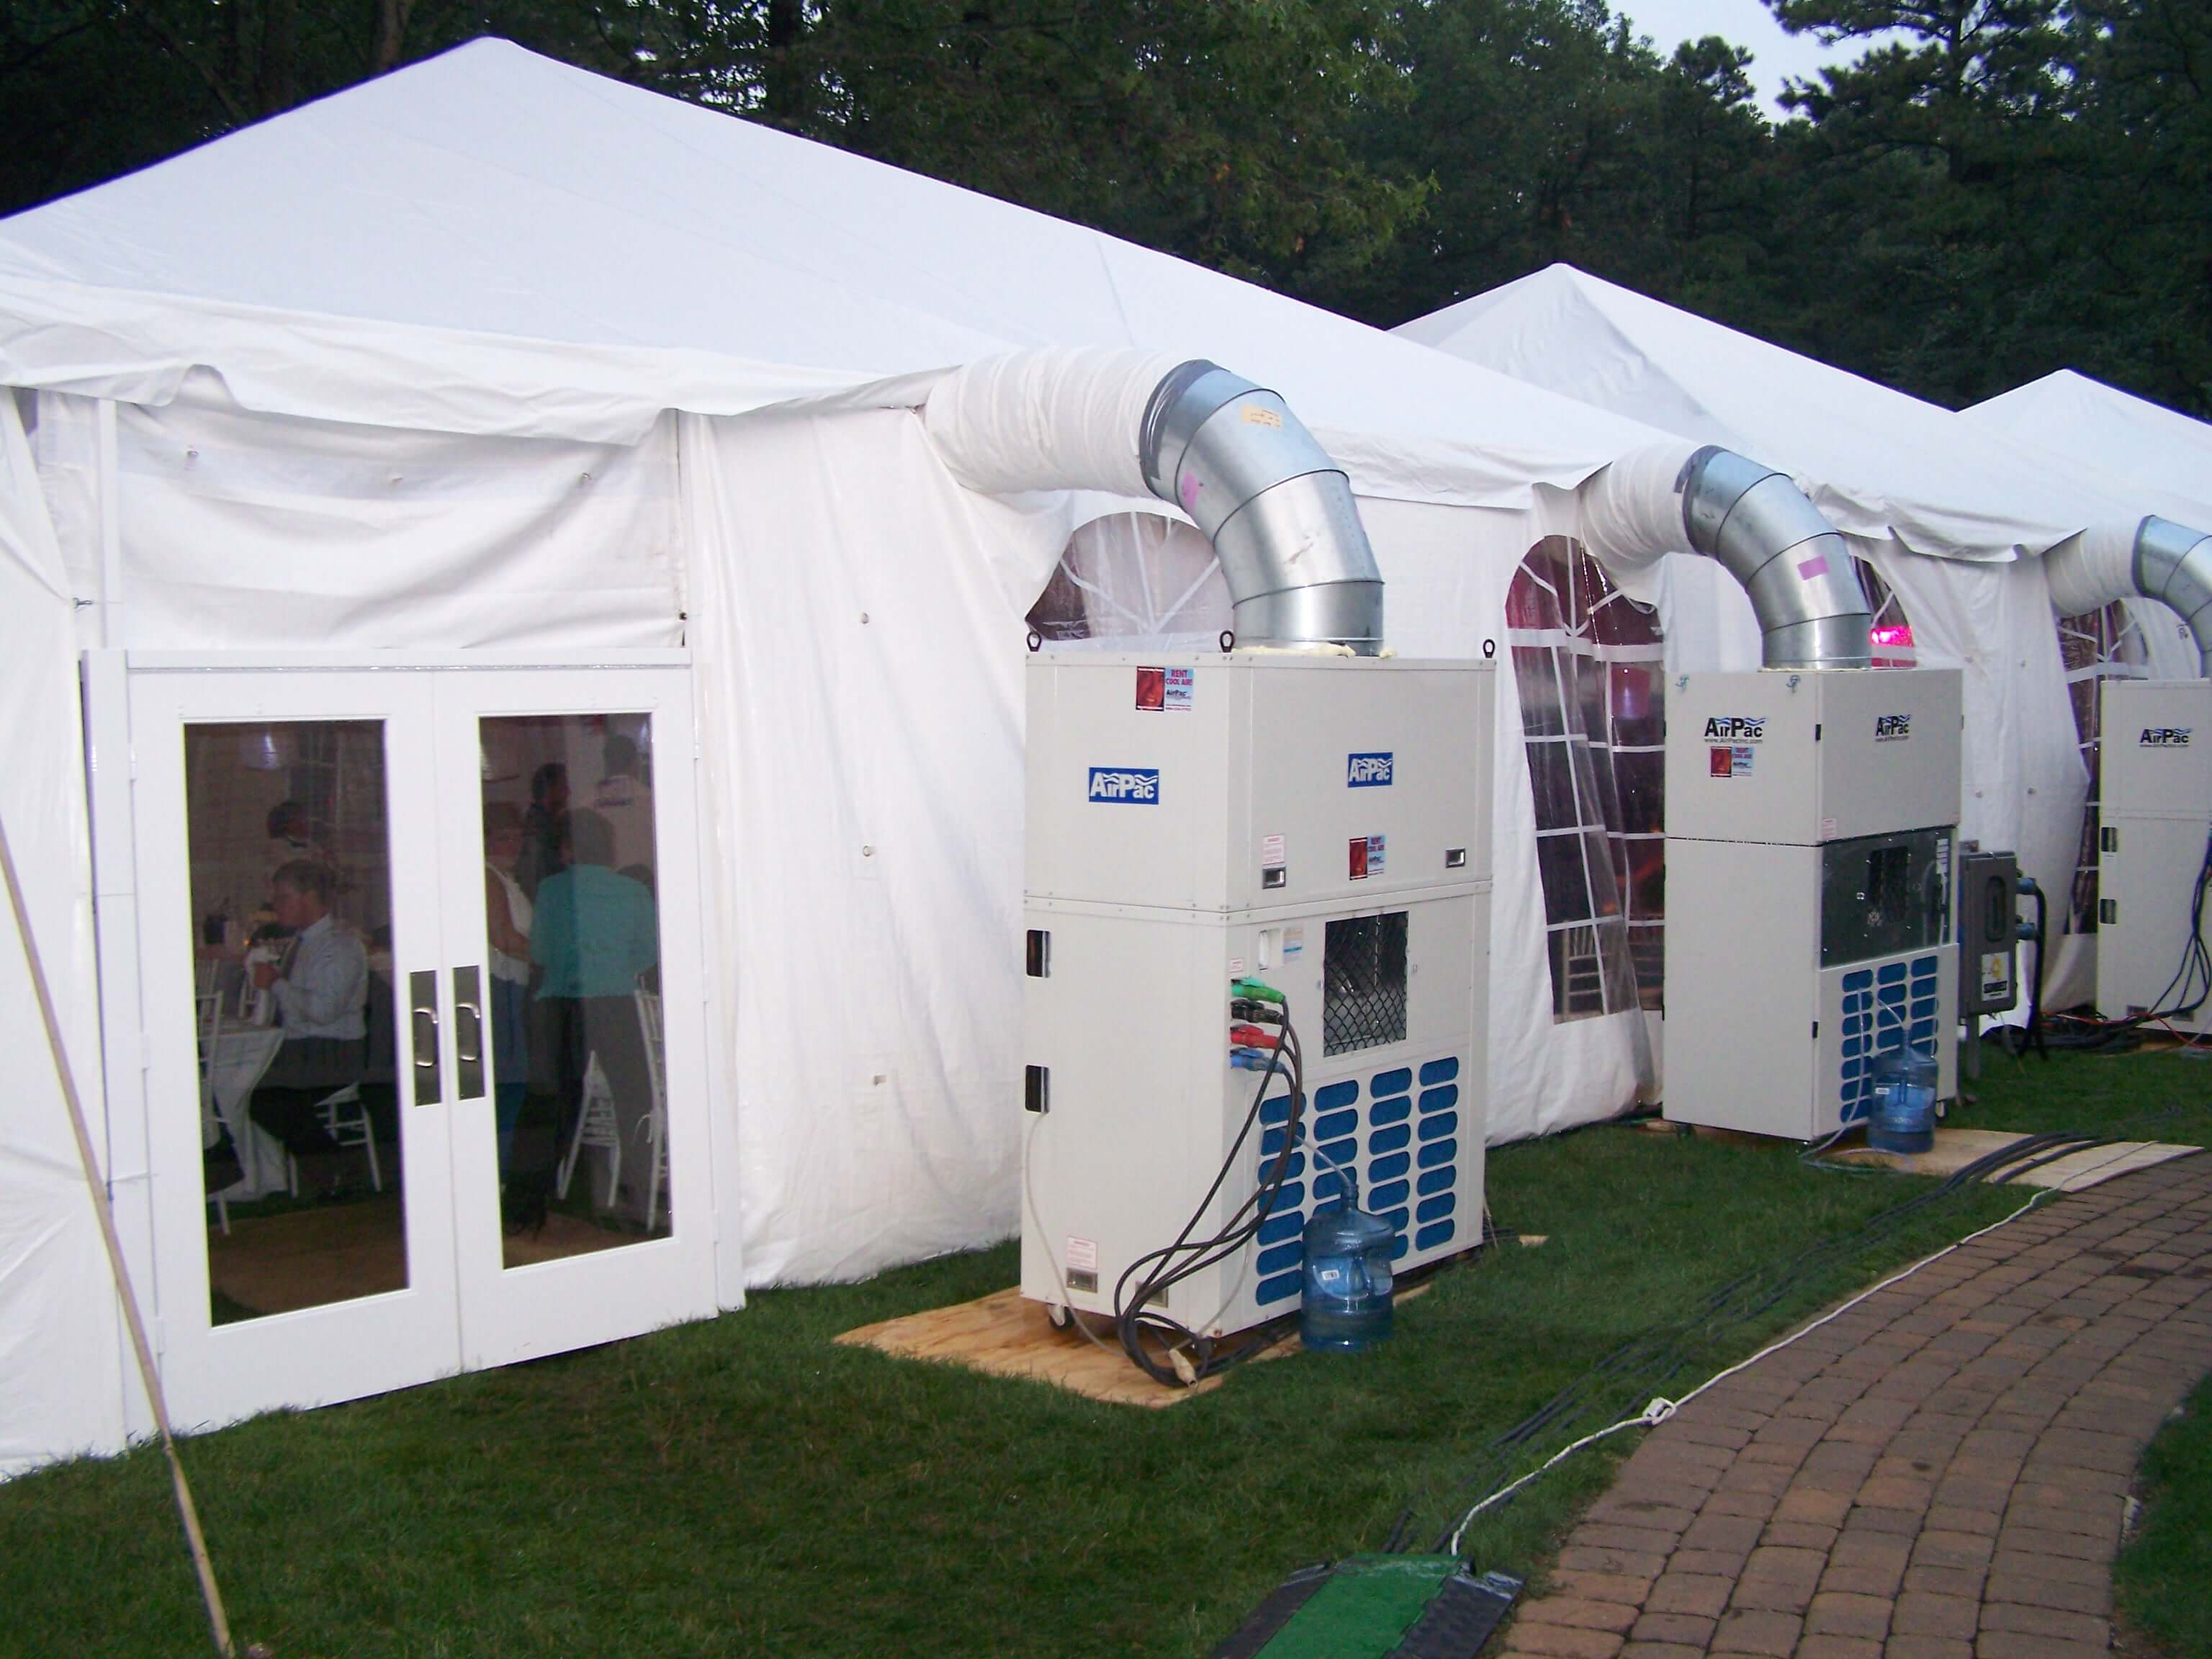 Call ... & Event Tent Rental | Party Tent Rental | Wedding Rental